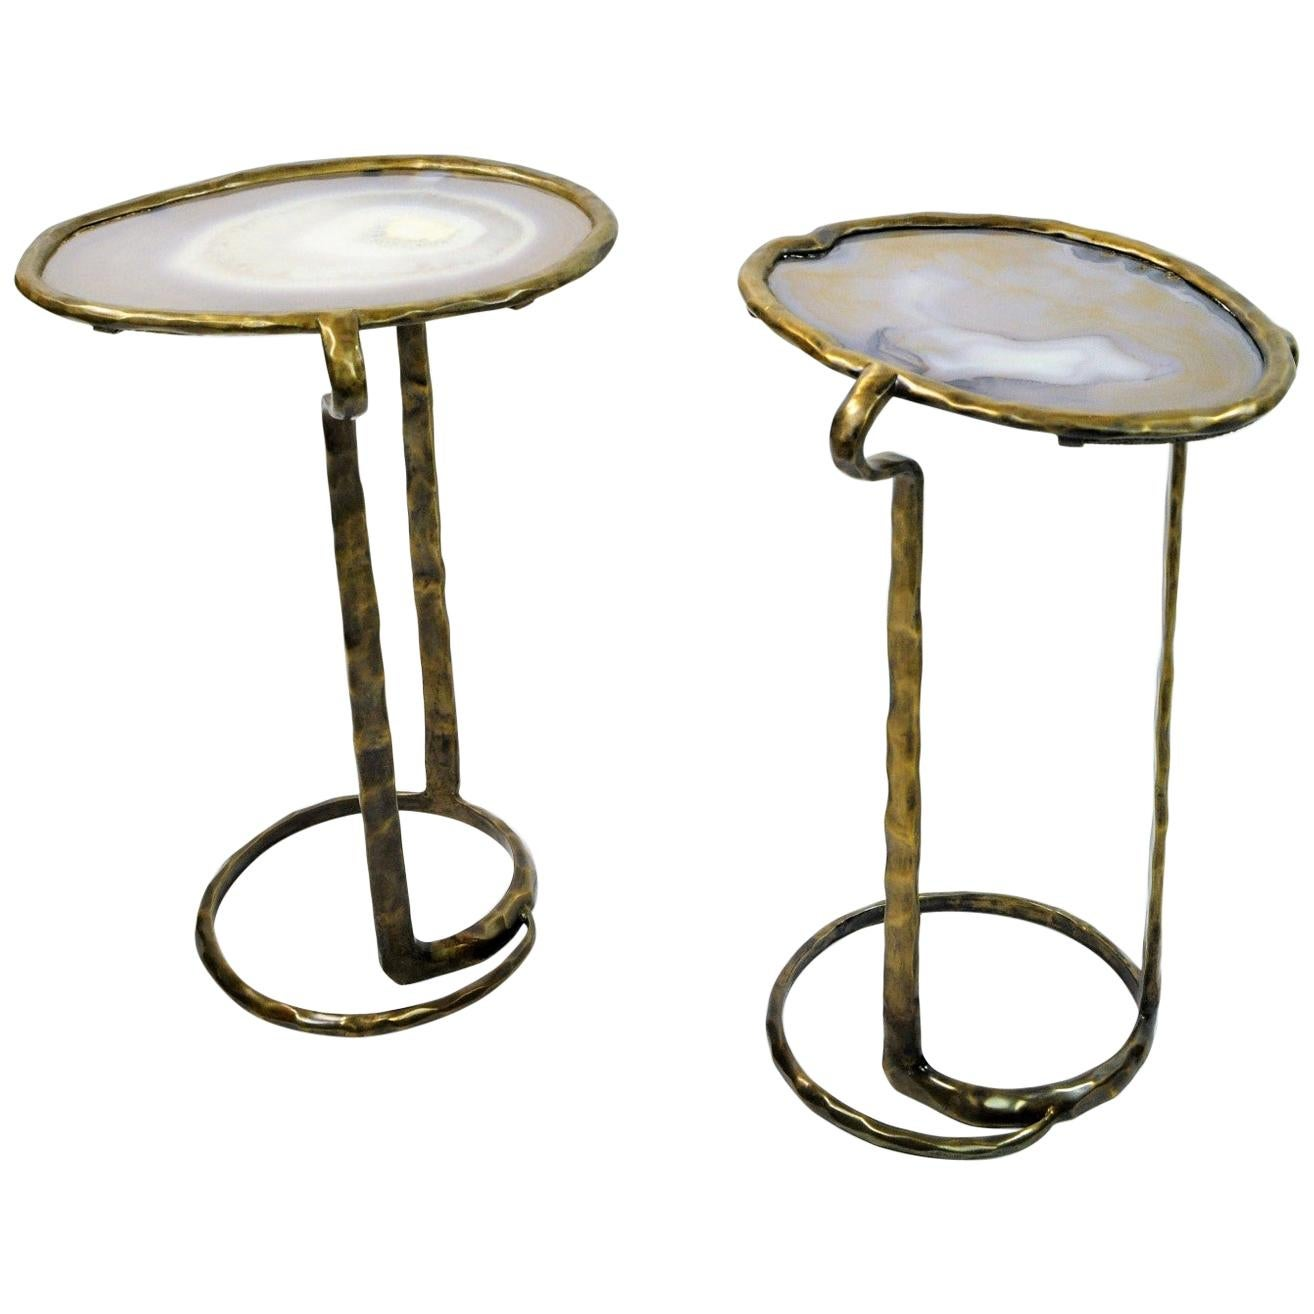 Pair of Side Tables SERPENT in Brass and Agate by Ginger Brown